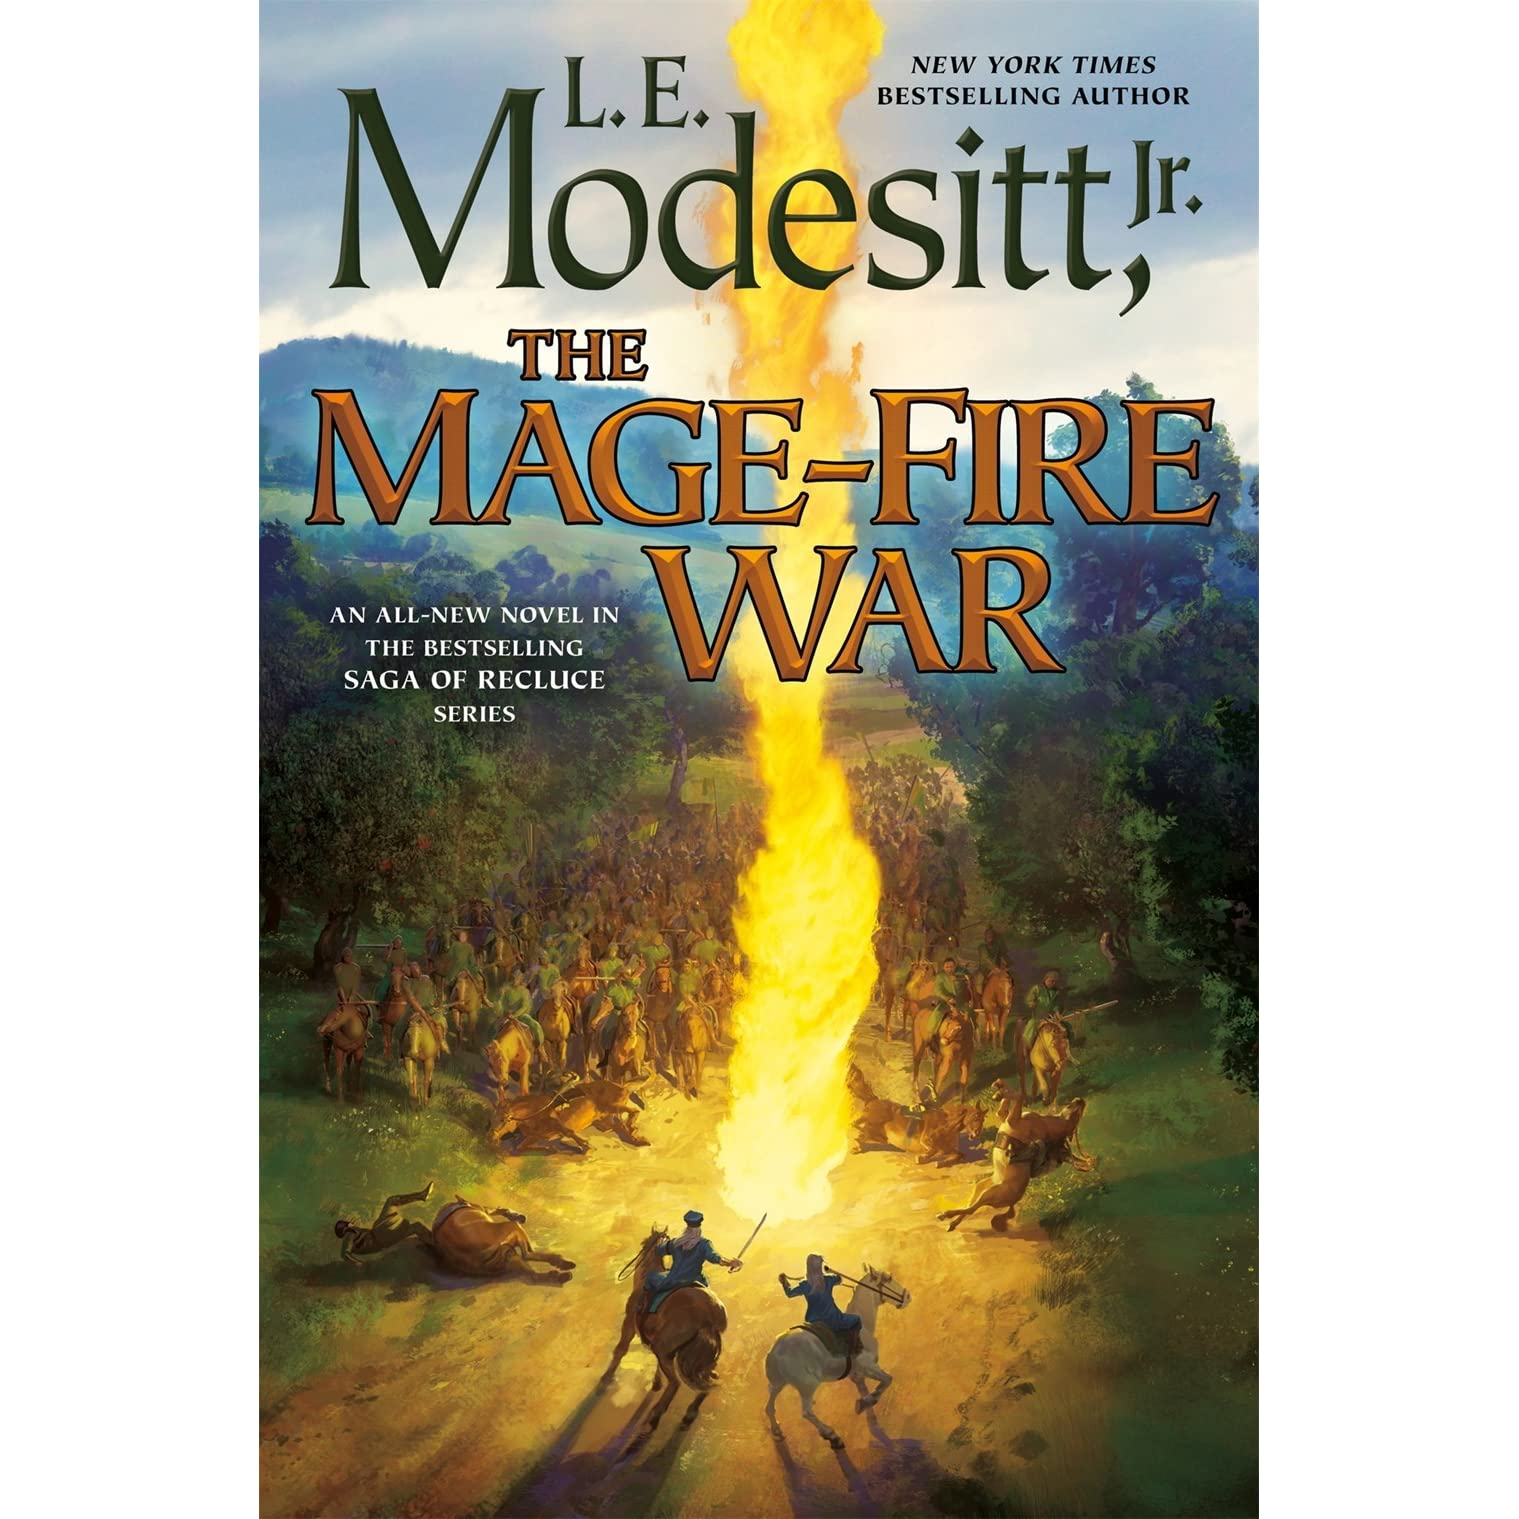 The Mage-Fire War (The Saga of Recluce, #21) by L E